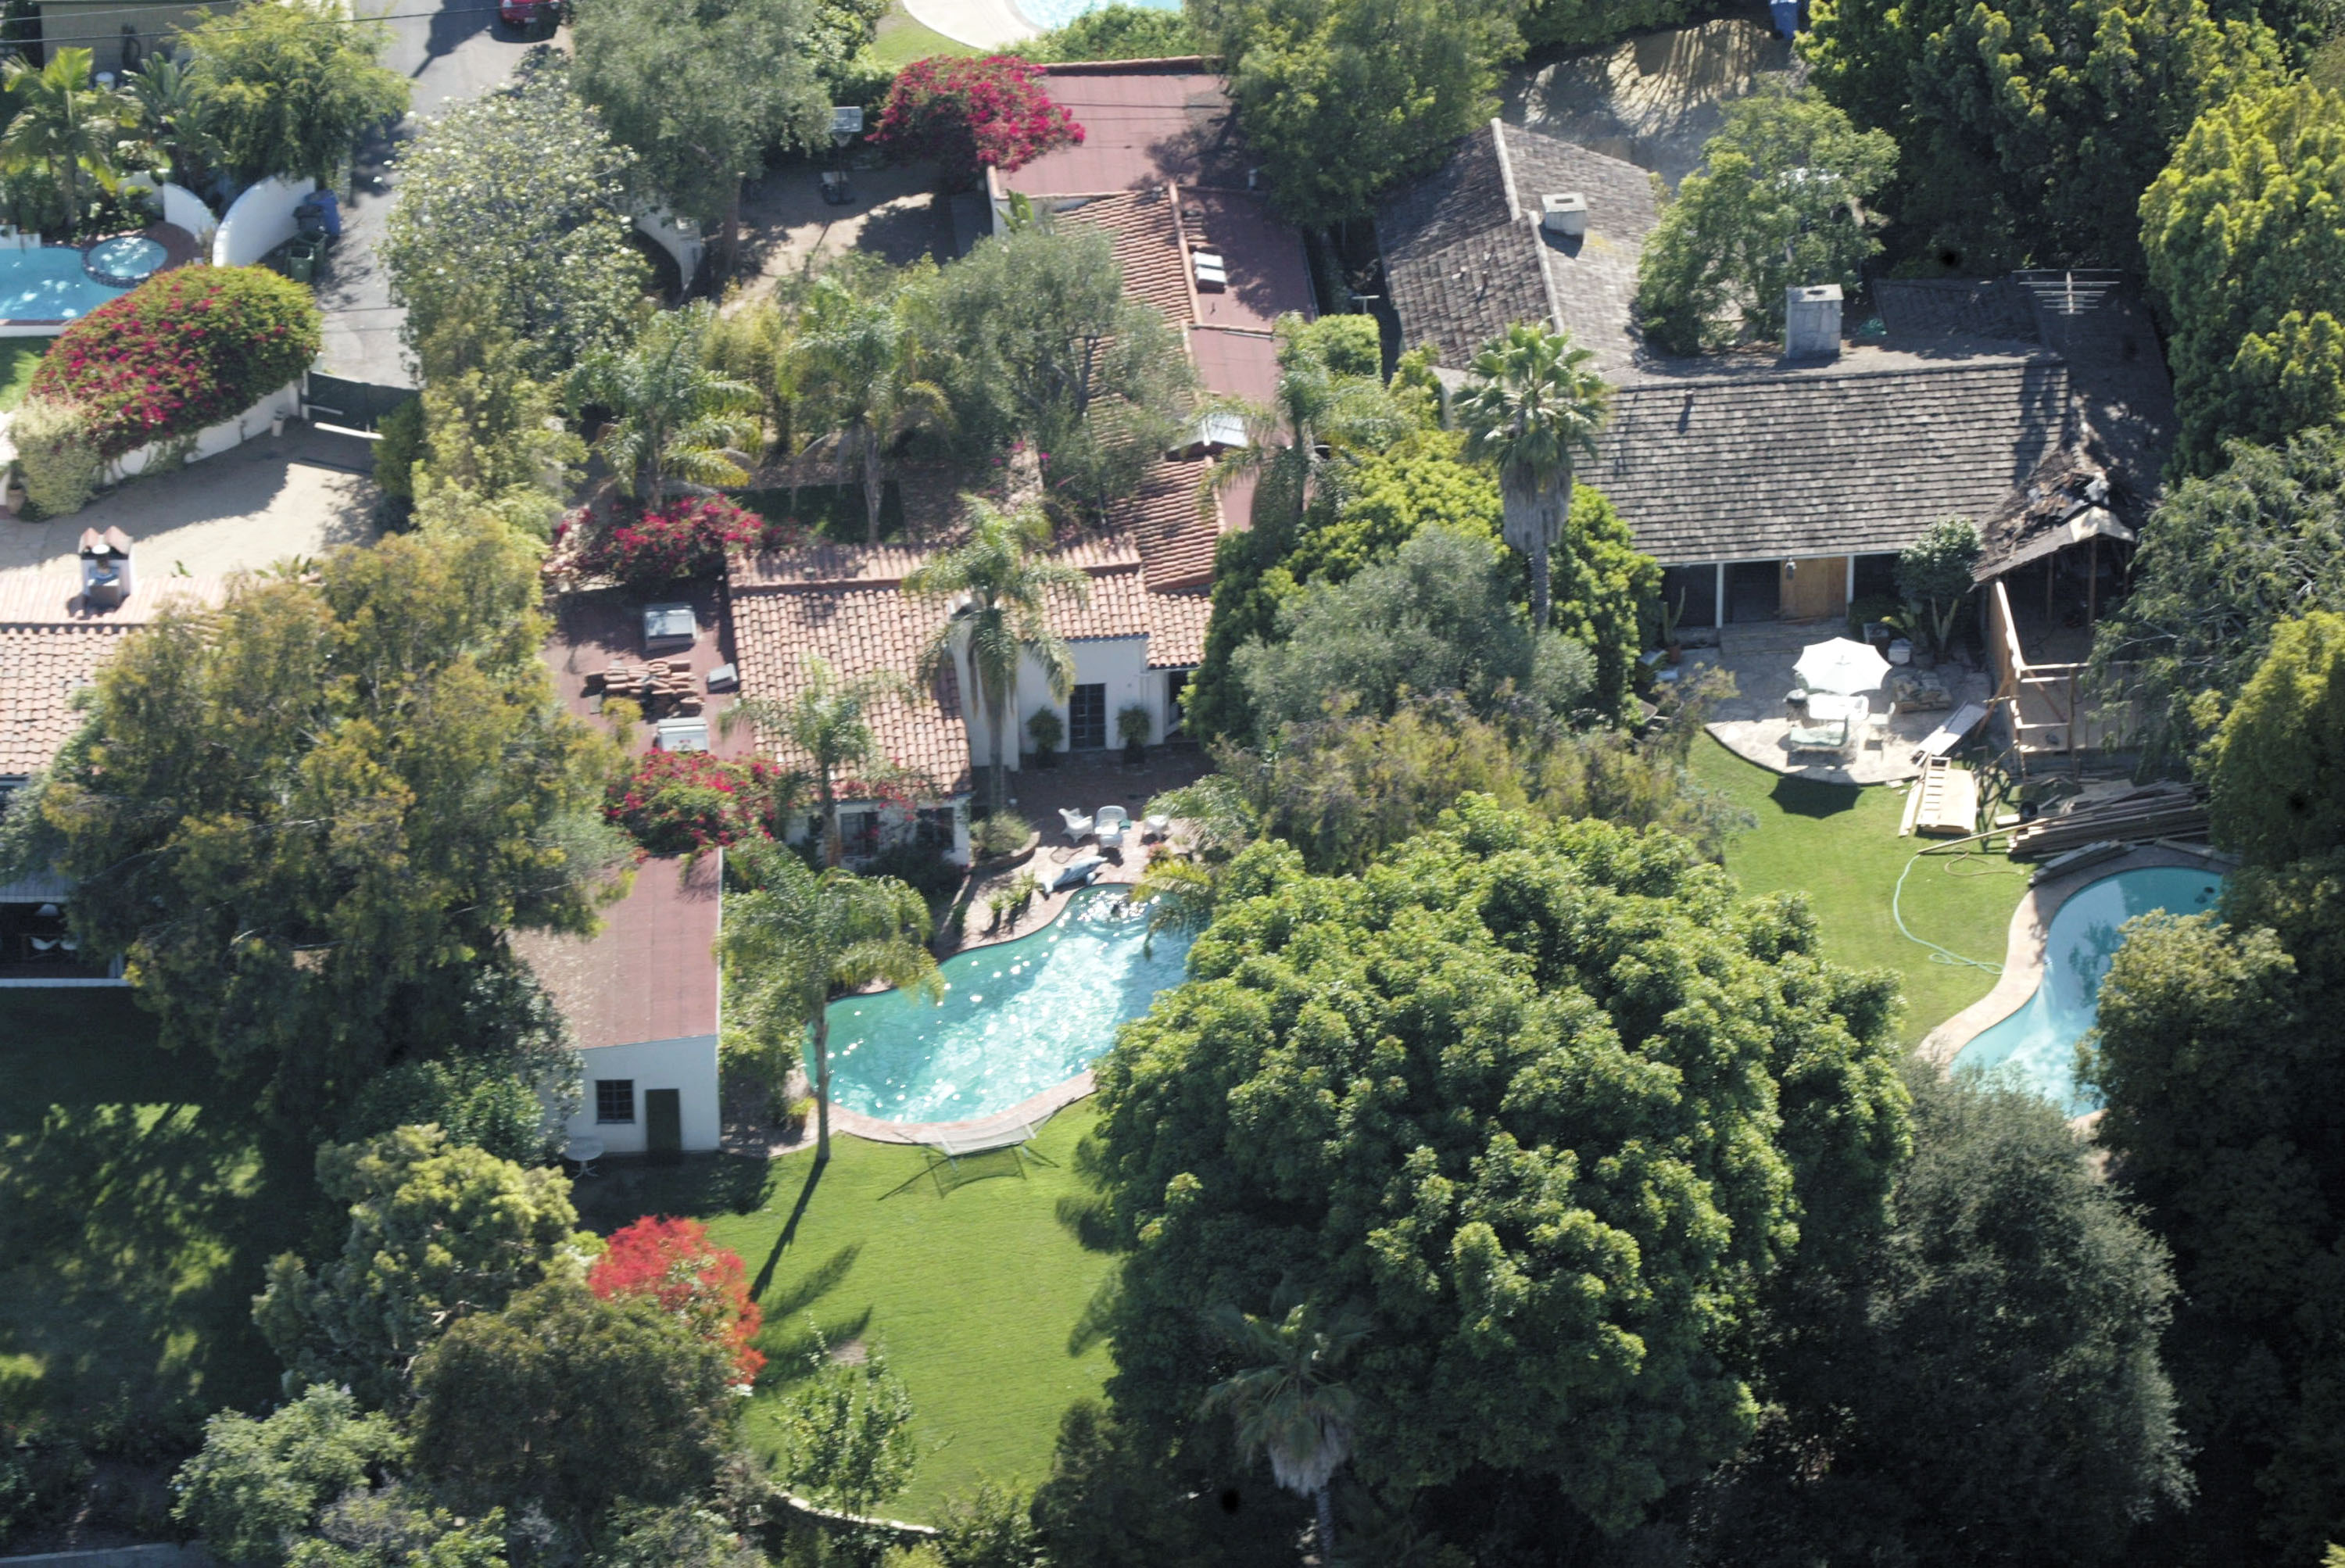 Marilyn Monroes Beloved Brentwood Home Is For Sale